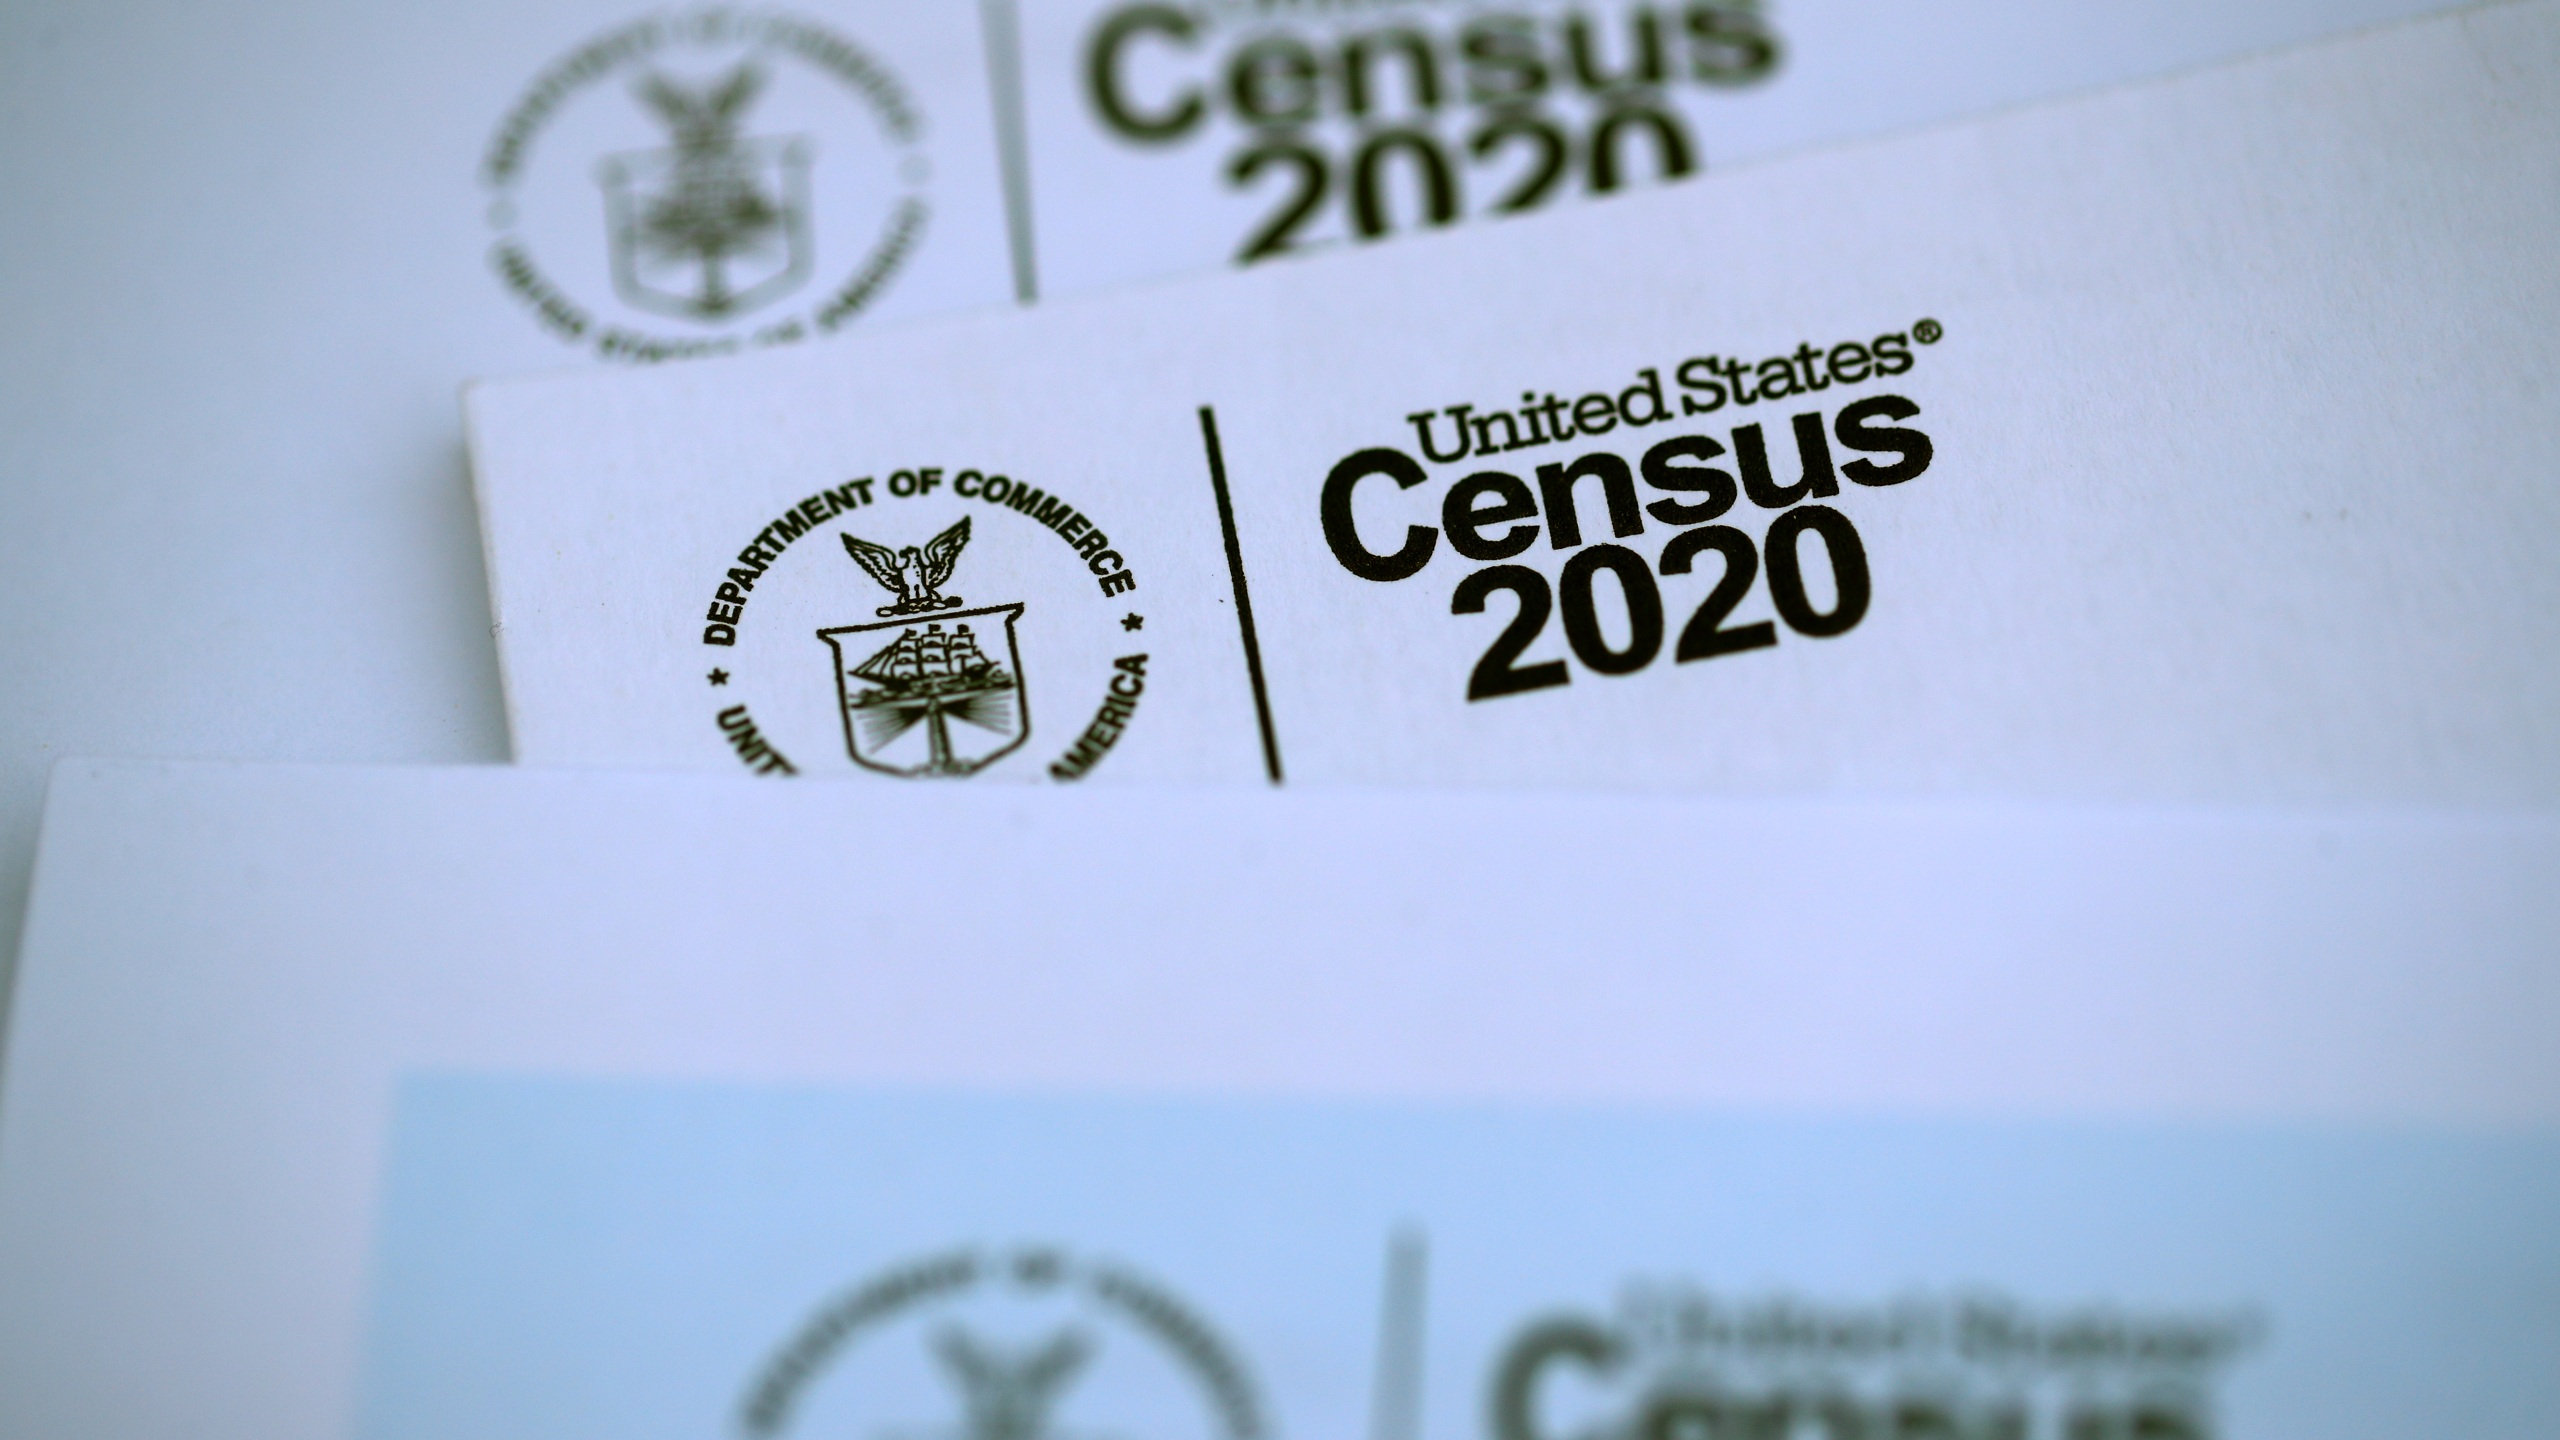 The U.S. Census logo appears on census materials received in the mail with an invitation to fill out census information online on March 19, 2020 in San Anselmo, California. (Justin Sullivan/Getty Images)